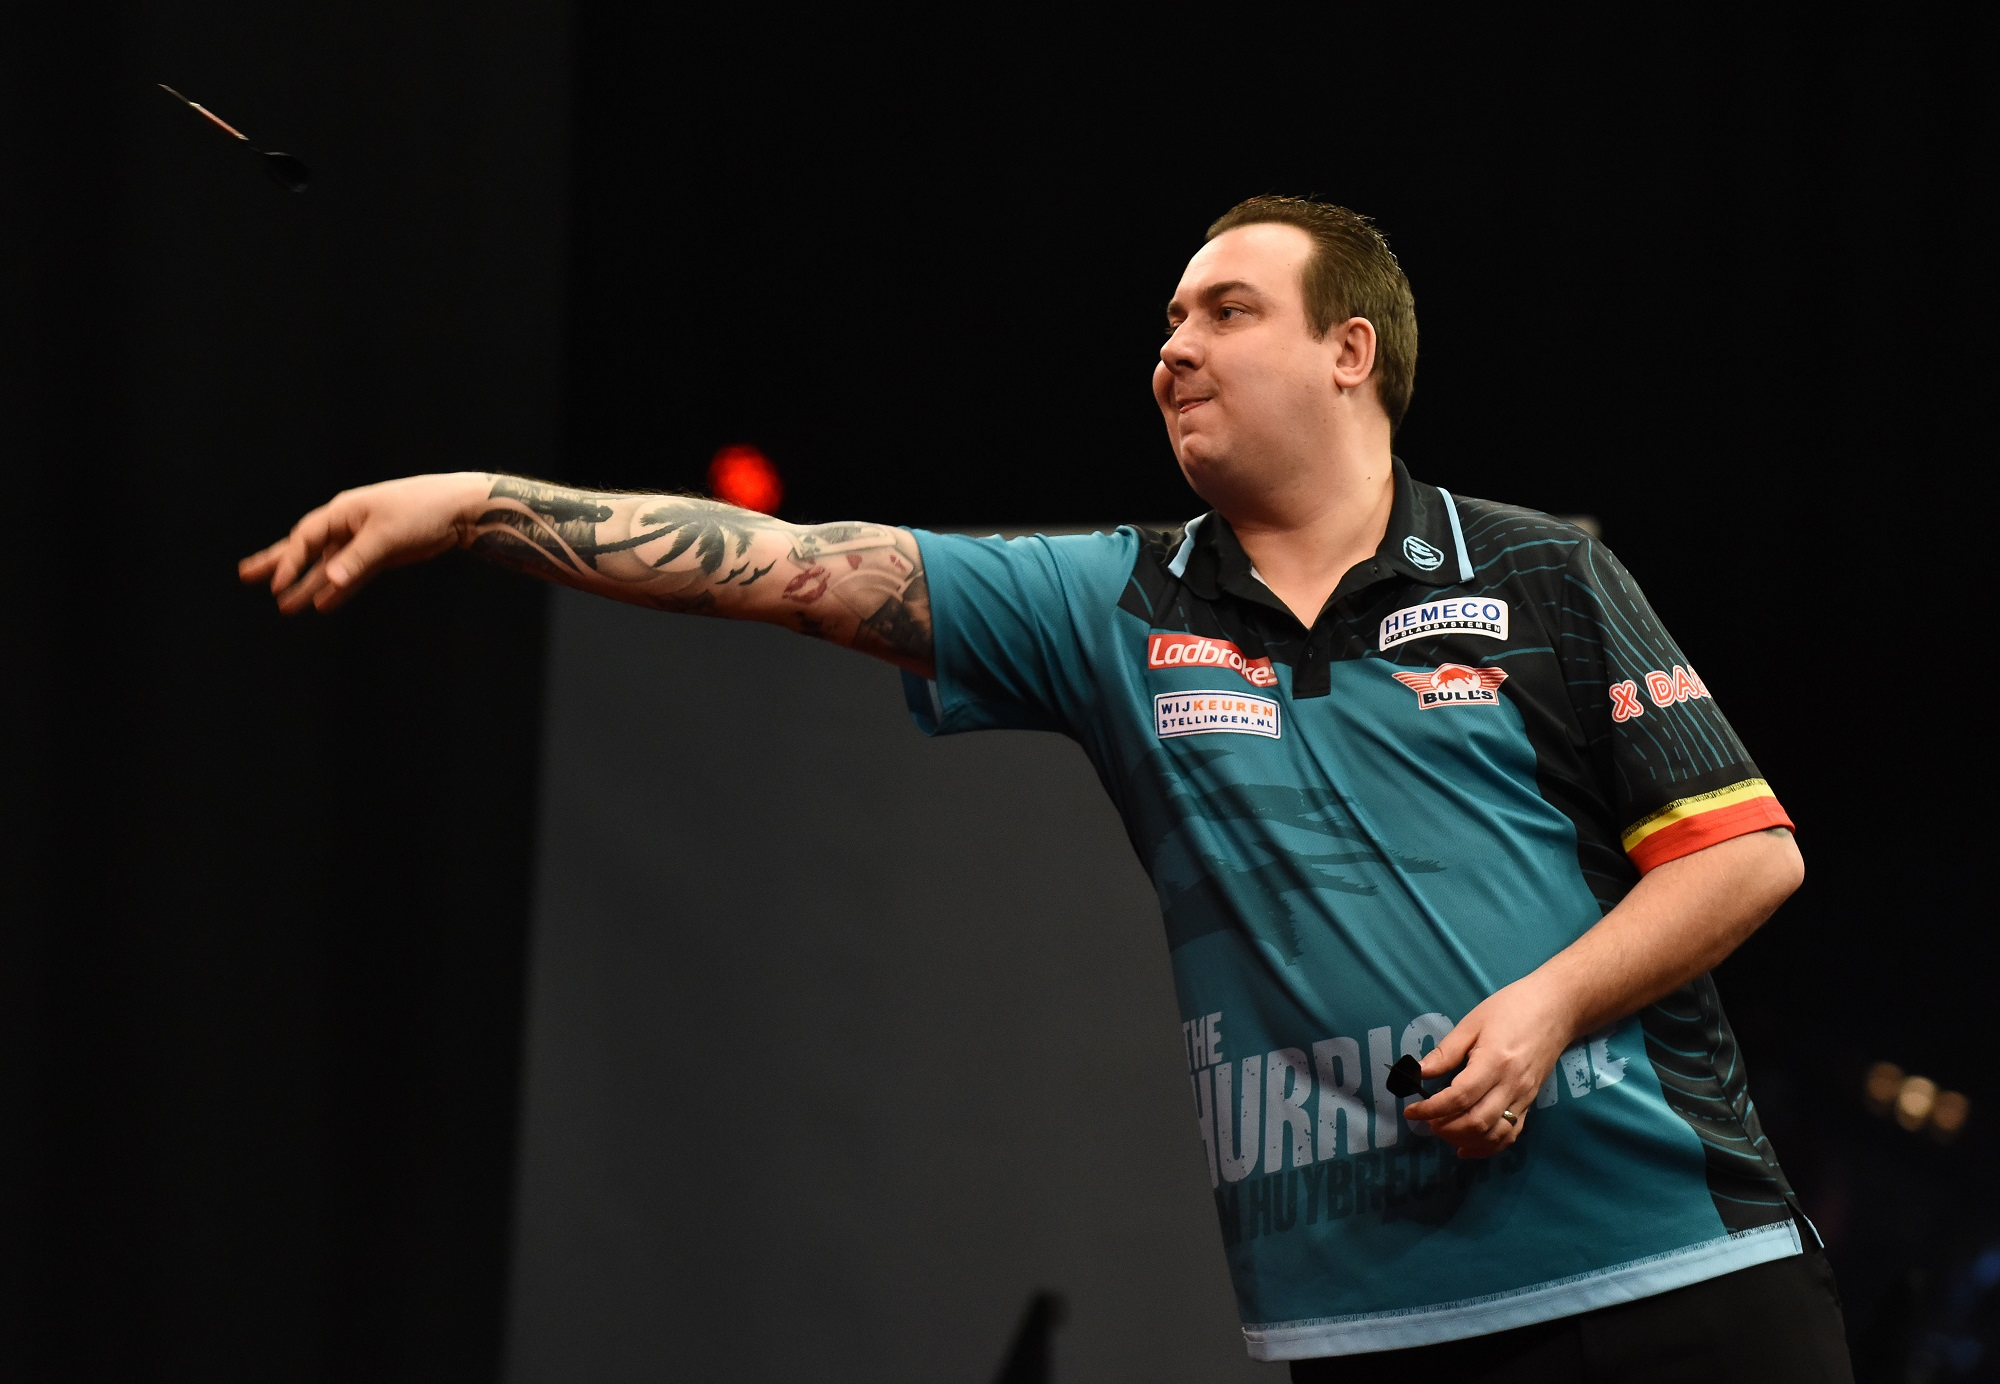 King, Huybrechts and Lewis through to Last 16 at World Series of Darts Finals Qualifier